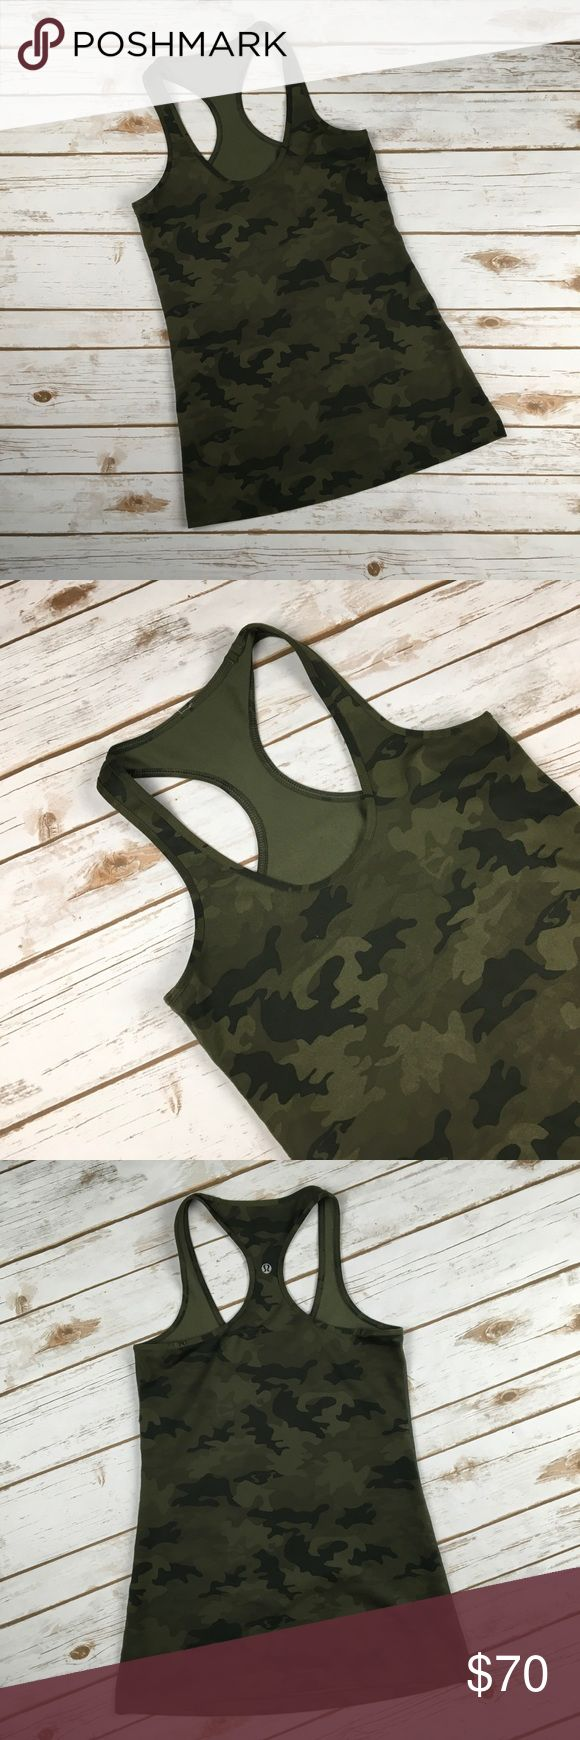 "Lululemon Camo Tank Racerback Cool CRB Green 6-8 Lululemon Camo Tank Racerback Cool CRB Green 6-8 Beautiful and hard to find lululemon camo racerback tank.  Size tag was removed but it measures like a 6-8.  Please measure a similar lulu tank you own to confirm sizing works for you!  Measured flat unstretched. Bust - 14.5"" Length from top of strap to hem - 28"" No holes, stains, tears. See photos. Ask any questions before purchasing lululemon athletica Tops Tank Tops"